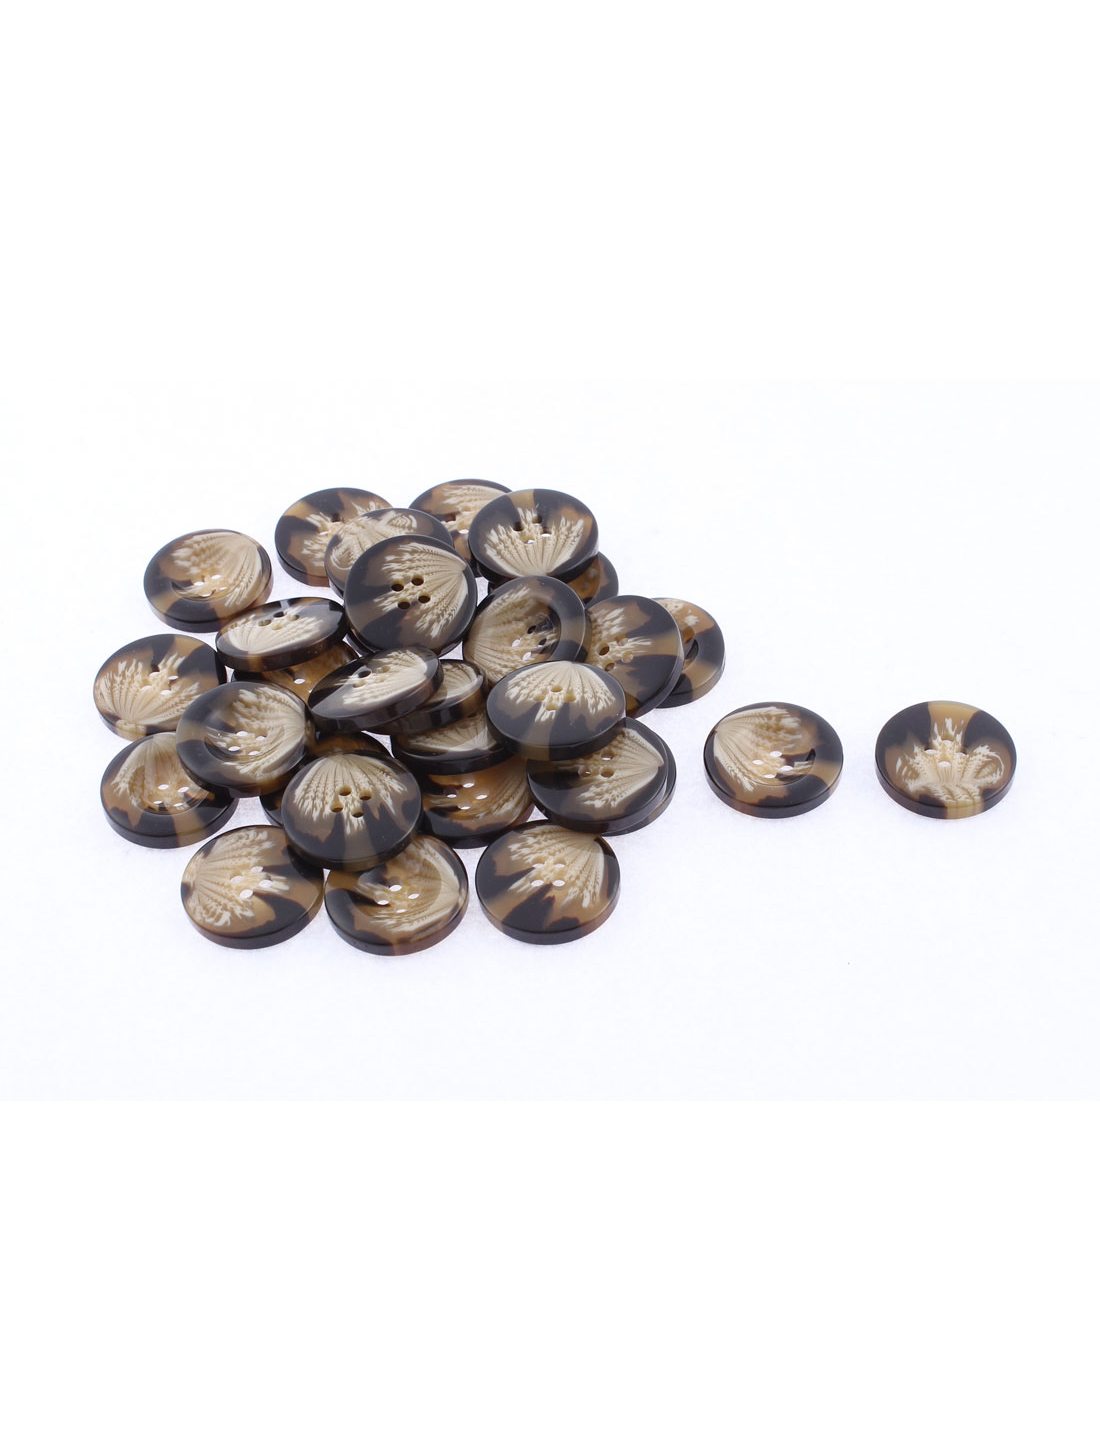 30pcs Round Shape Sewing Buttons 25mm Dia Coffee Color for Coat Jacket